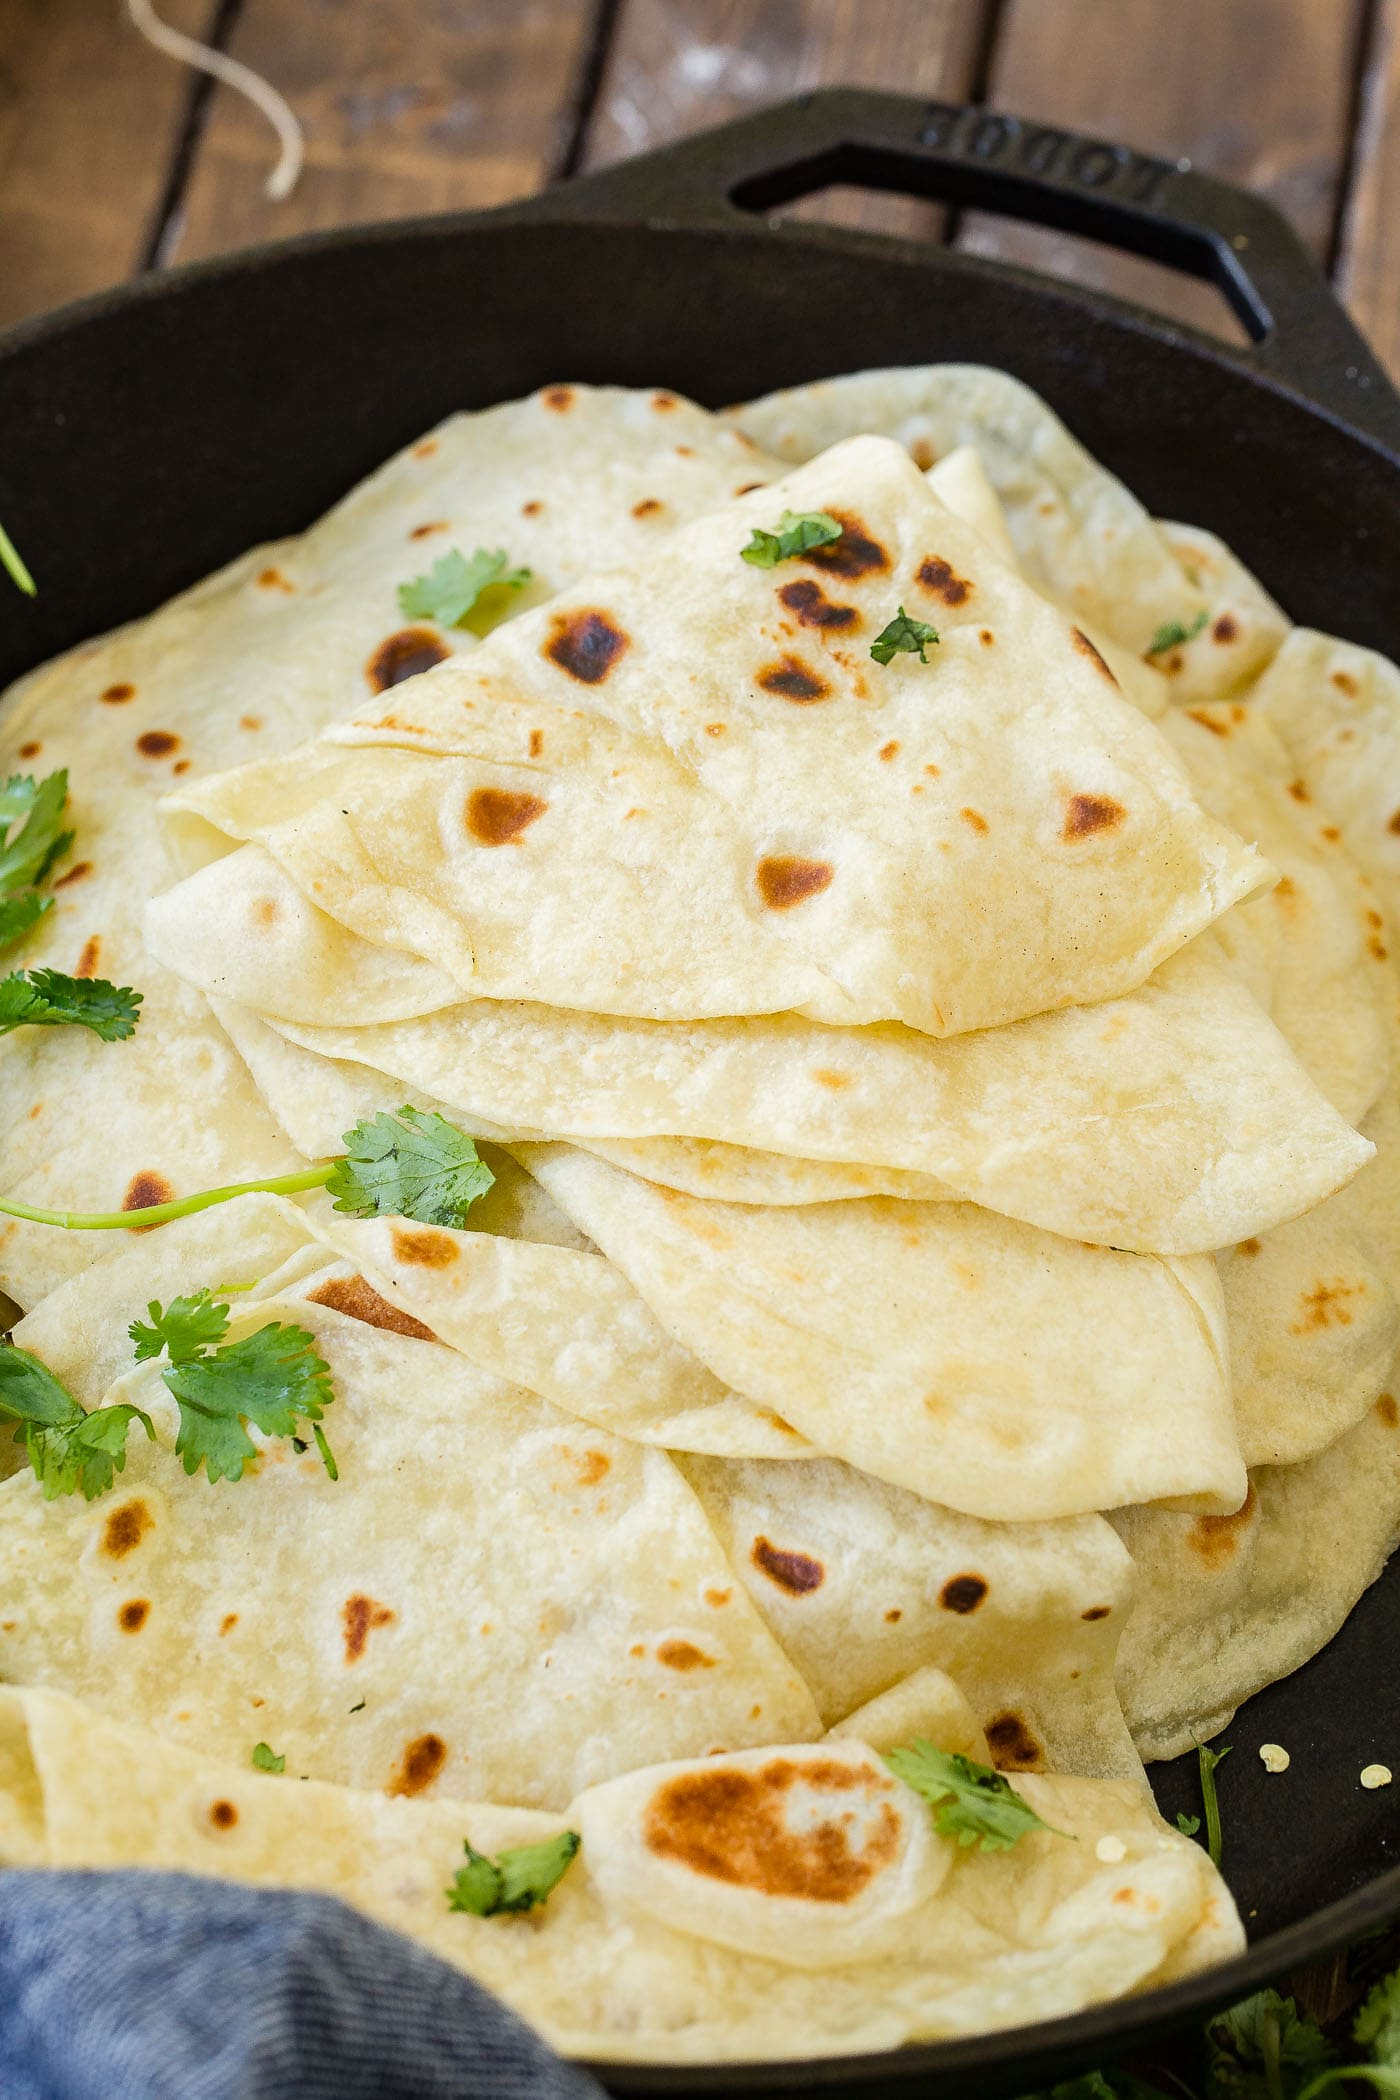 A photo of a stack of cooked homemade flour tortillas in a cast iron skillet with the top few tortillas folded in quarters.